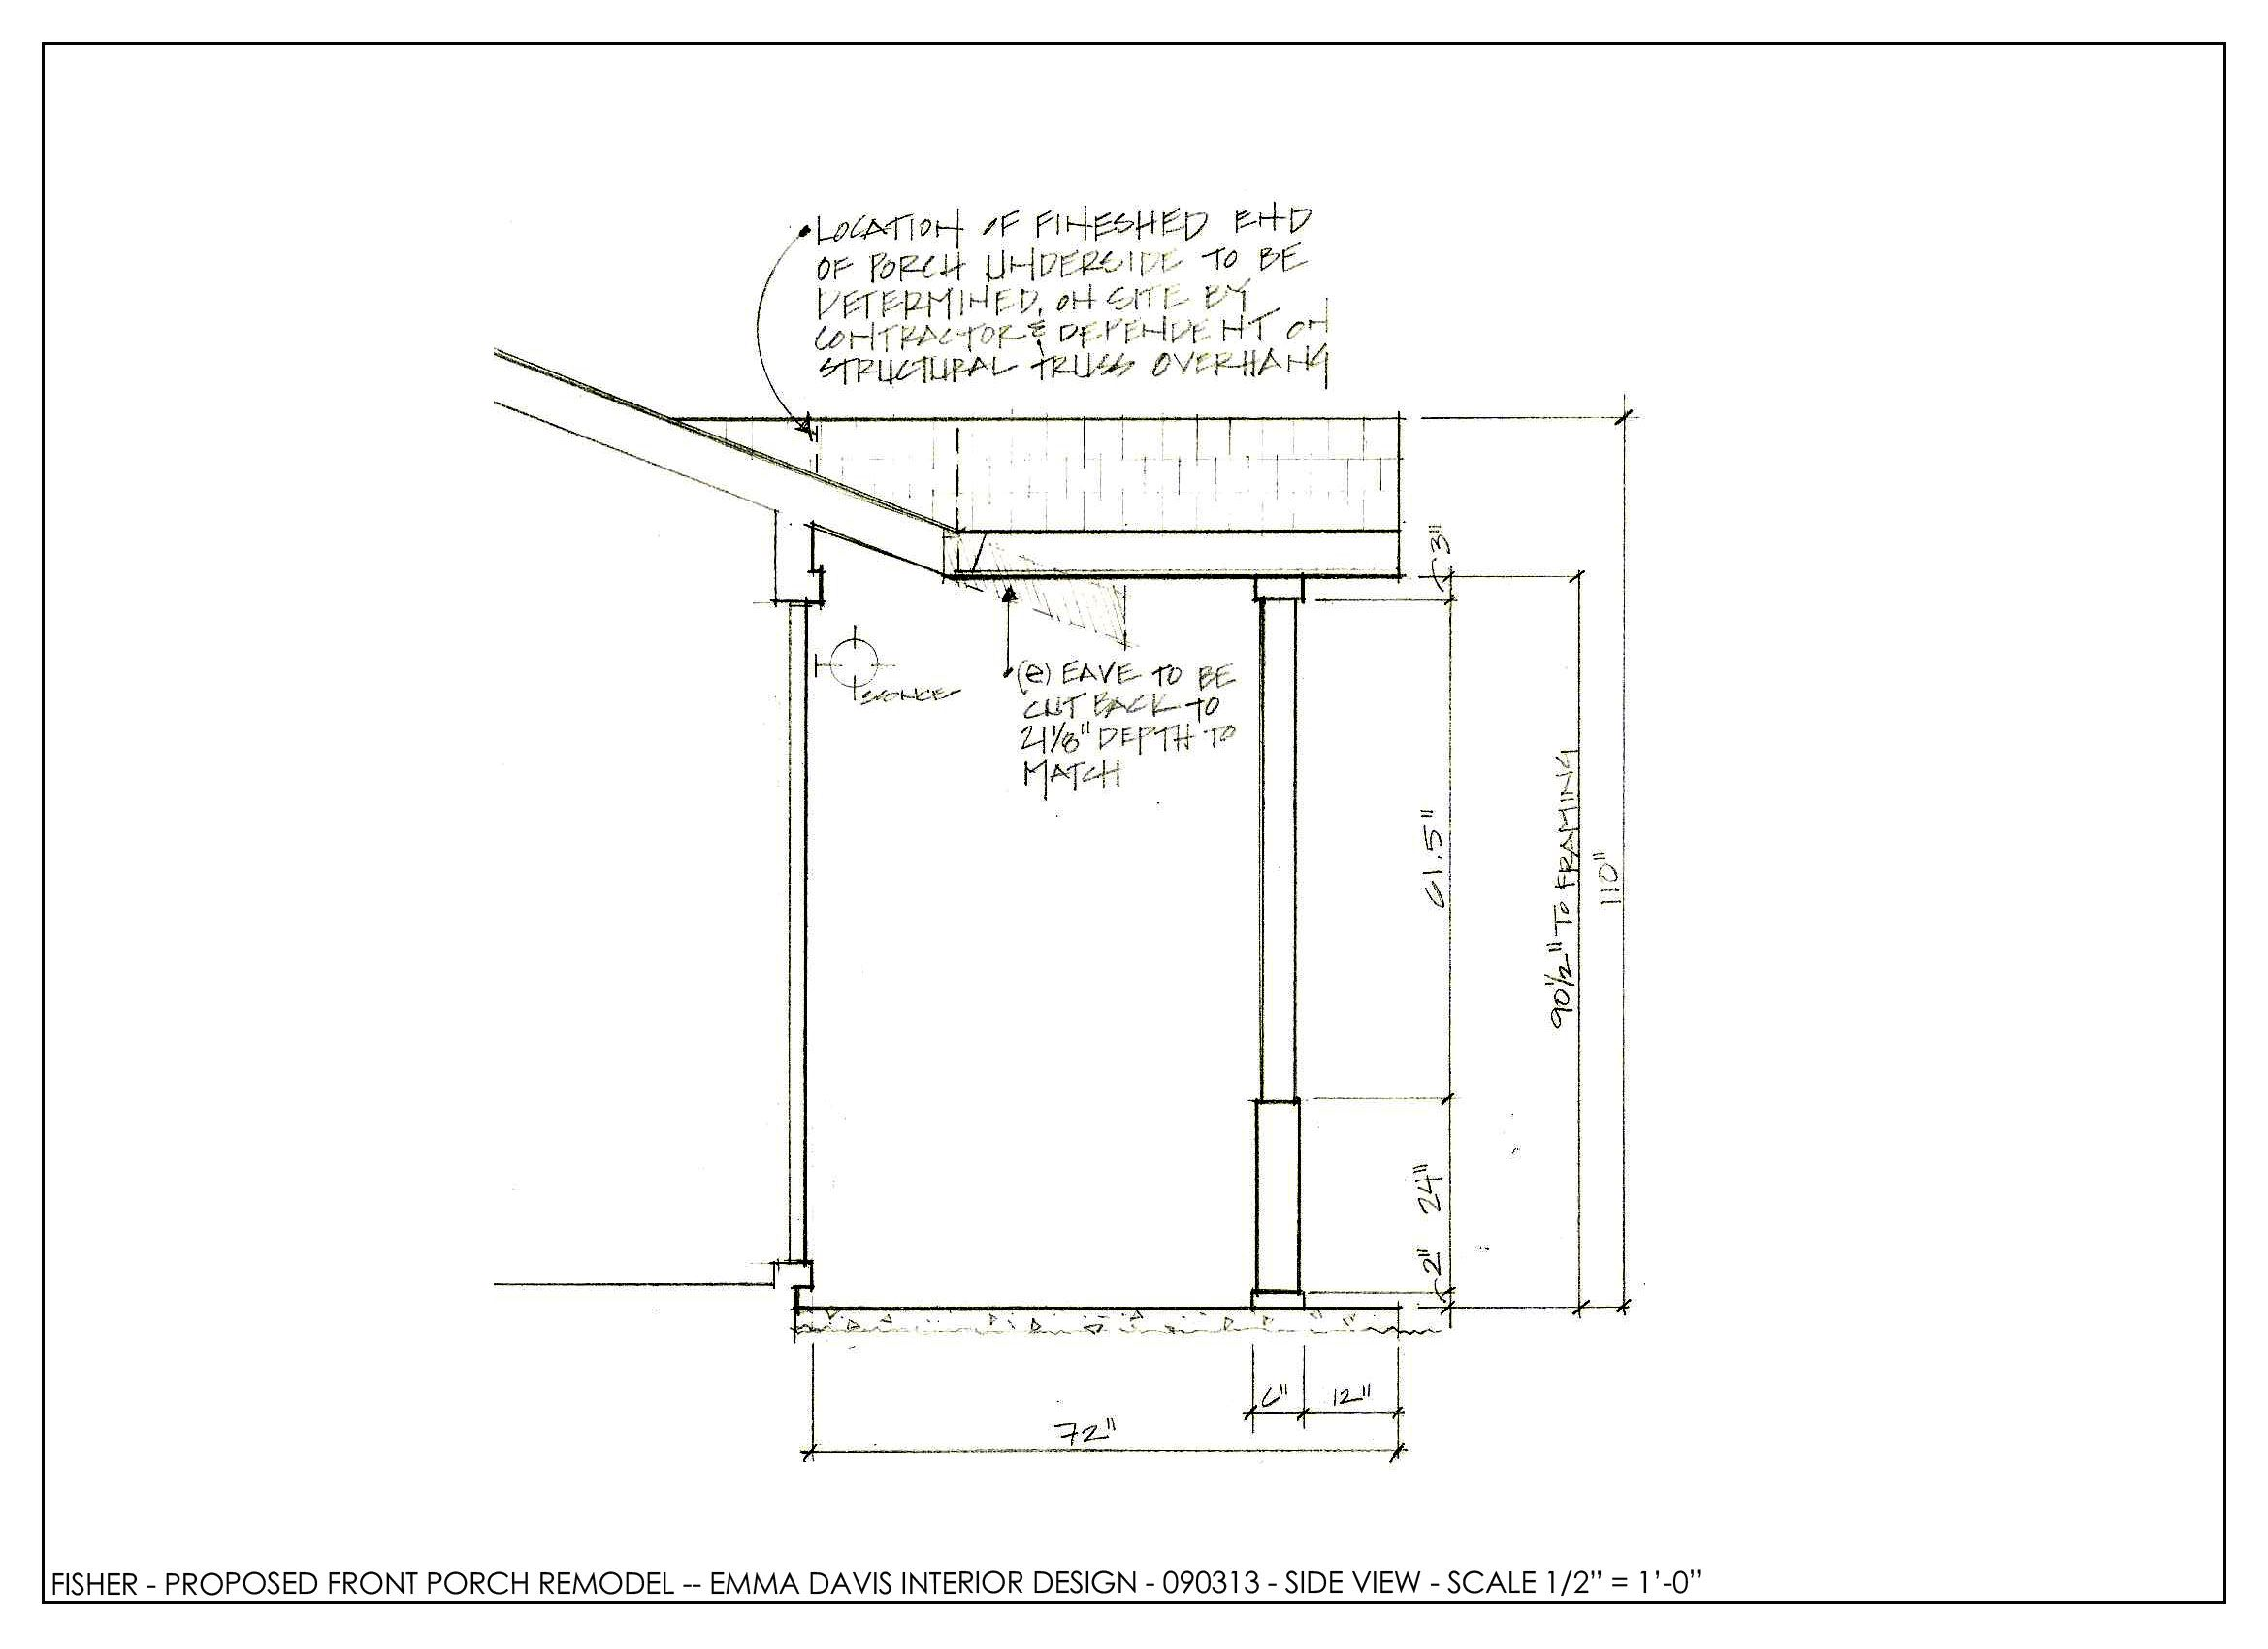 Front Porch Extension Concept Drawing Porch Extension Porch Roof Design Roof Design